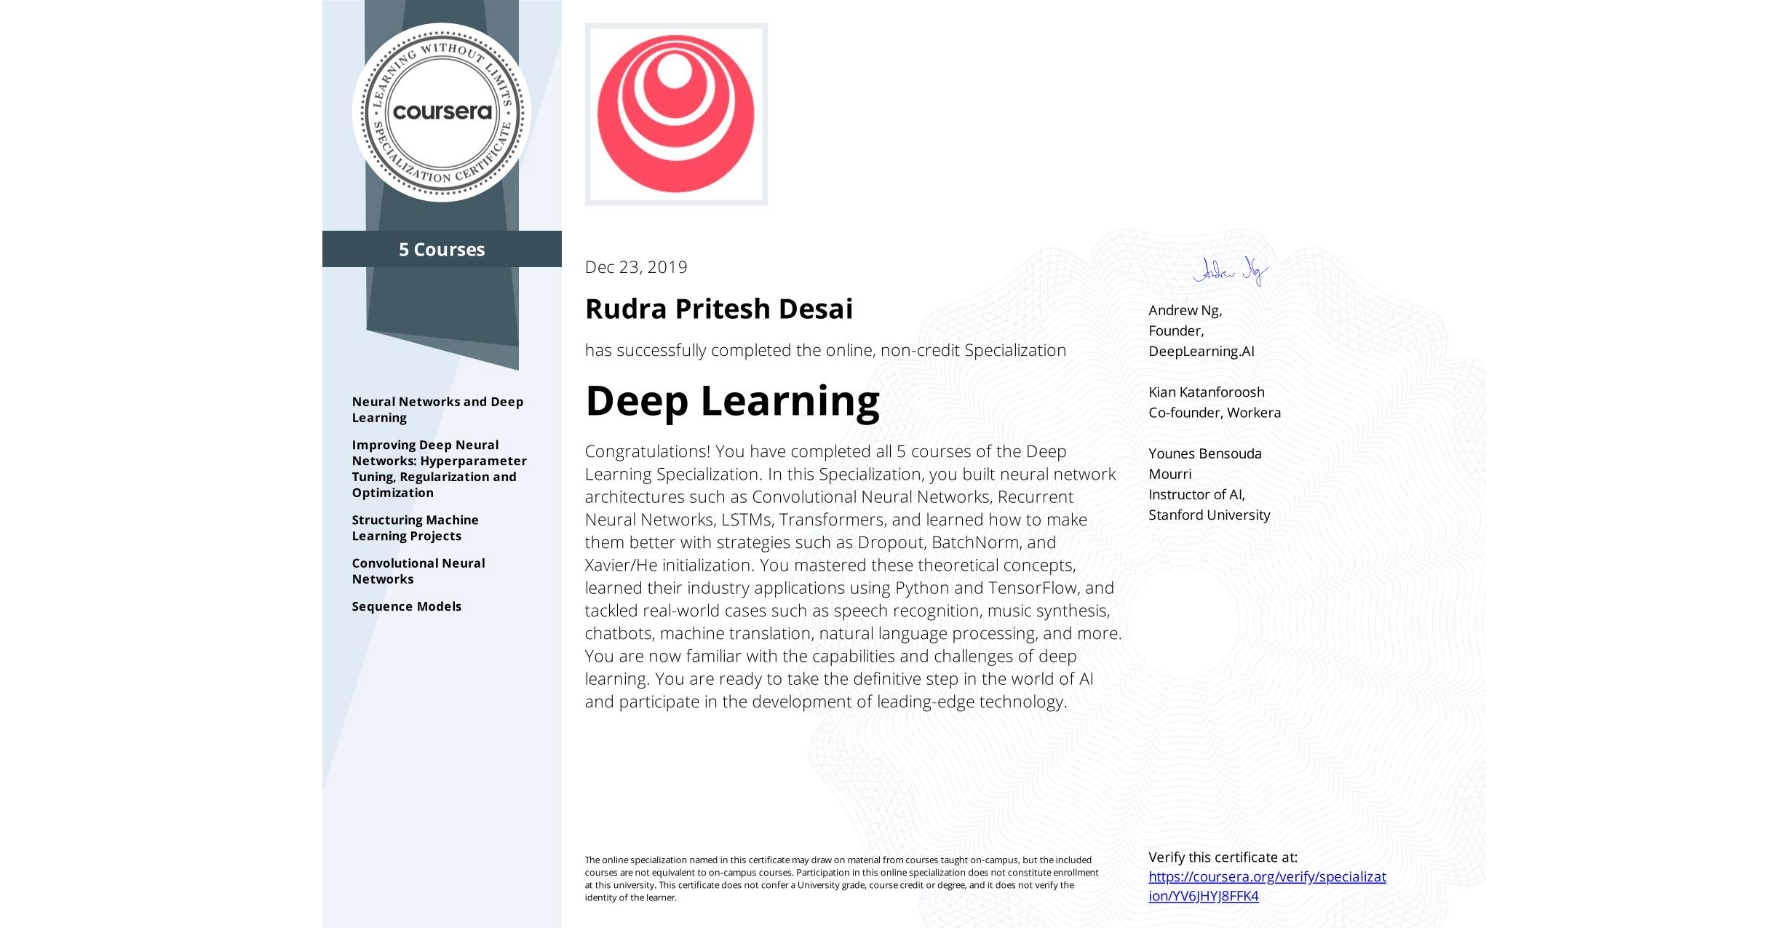 View certificate for Rudra Pritesh Desai, Deep Learning, offered through Coursera. The Deep Learning Specialization is designed to prepare learners to participate in the development of cutting-edge AI technology, and to understand the capability, the challenges, and the consequences of the rise of deep learning. Through five interconnected courses, learners develop a profound knowledge of the hottest AI algorithms, mastering deep learning from its foundations (neural networks) to its industry applications (Computer Vision, Natural Language Processing, Speech Recognition, etc.).